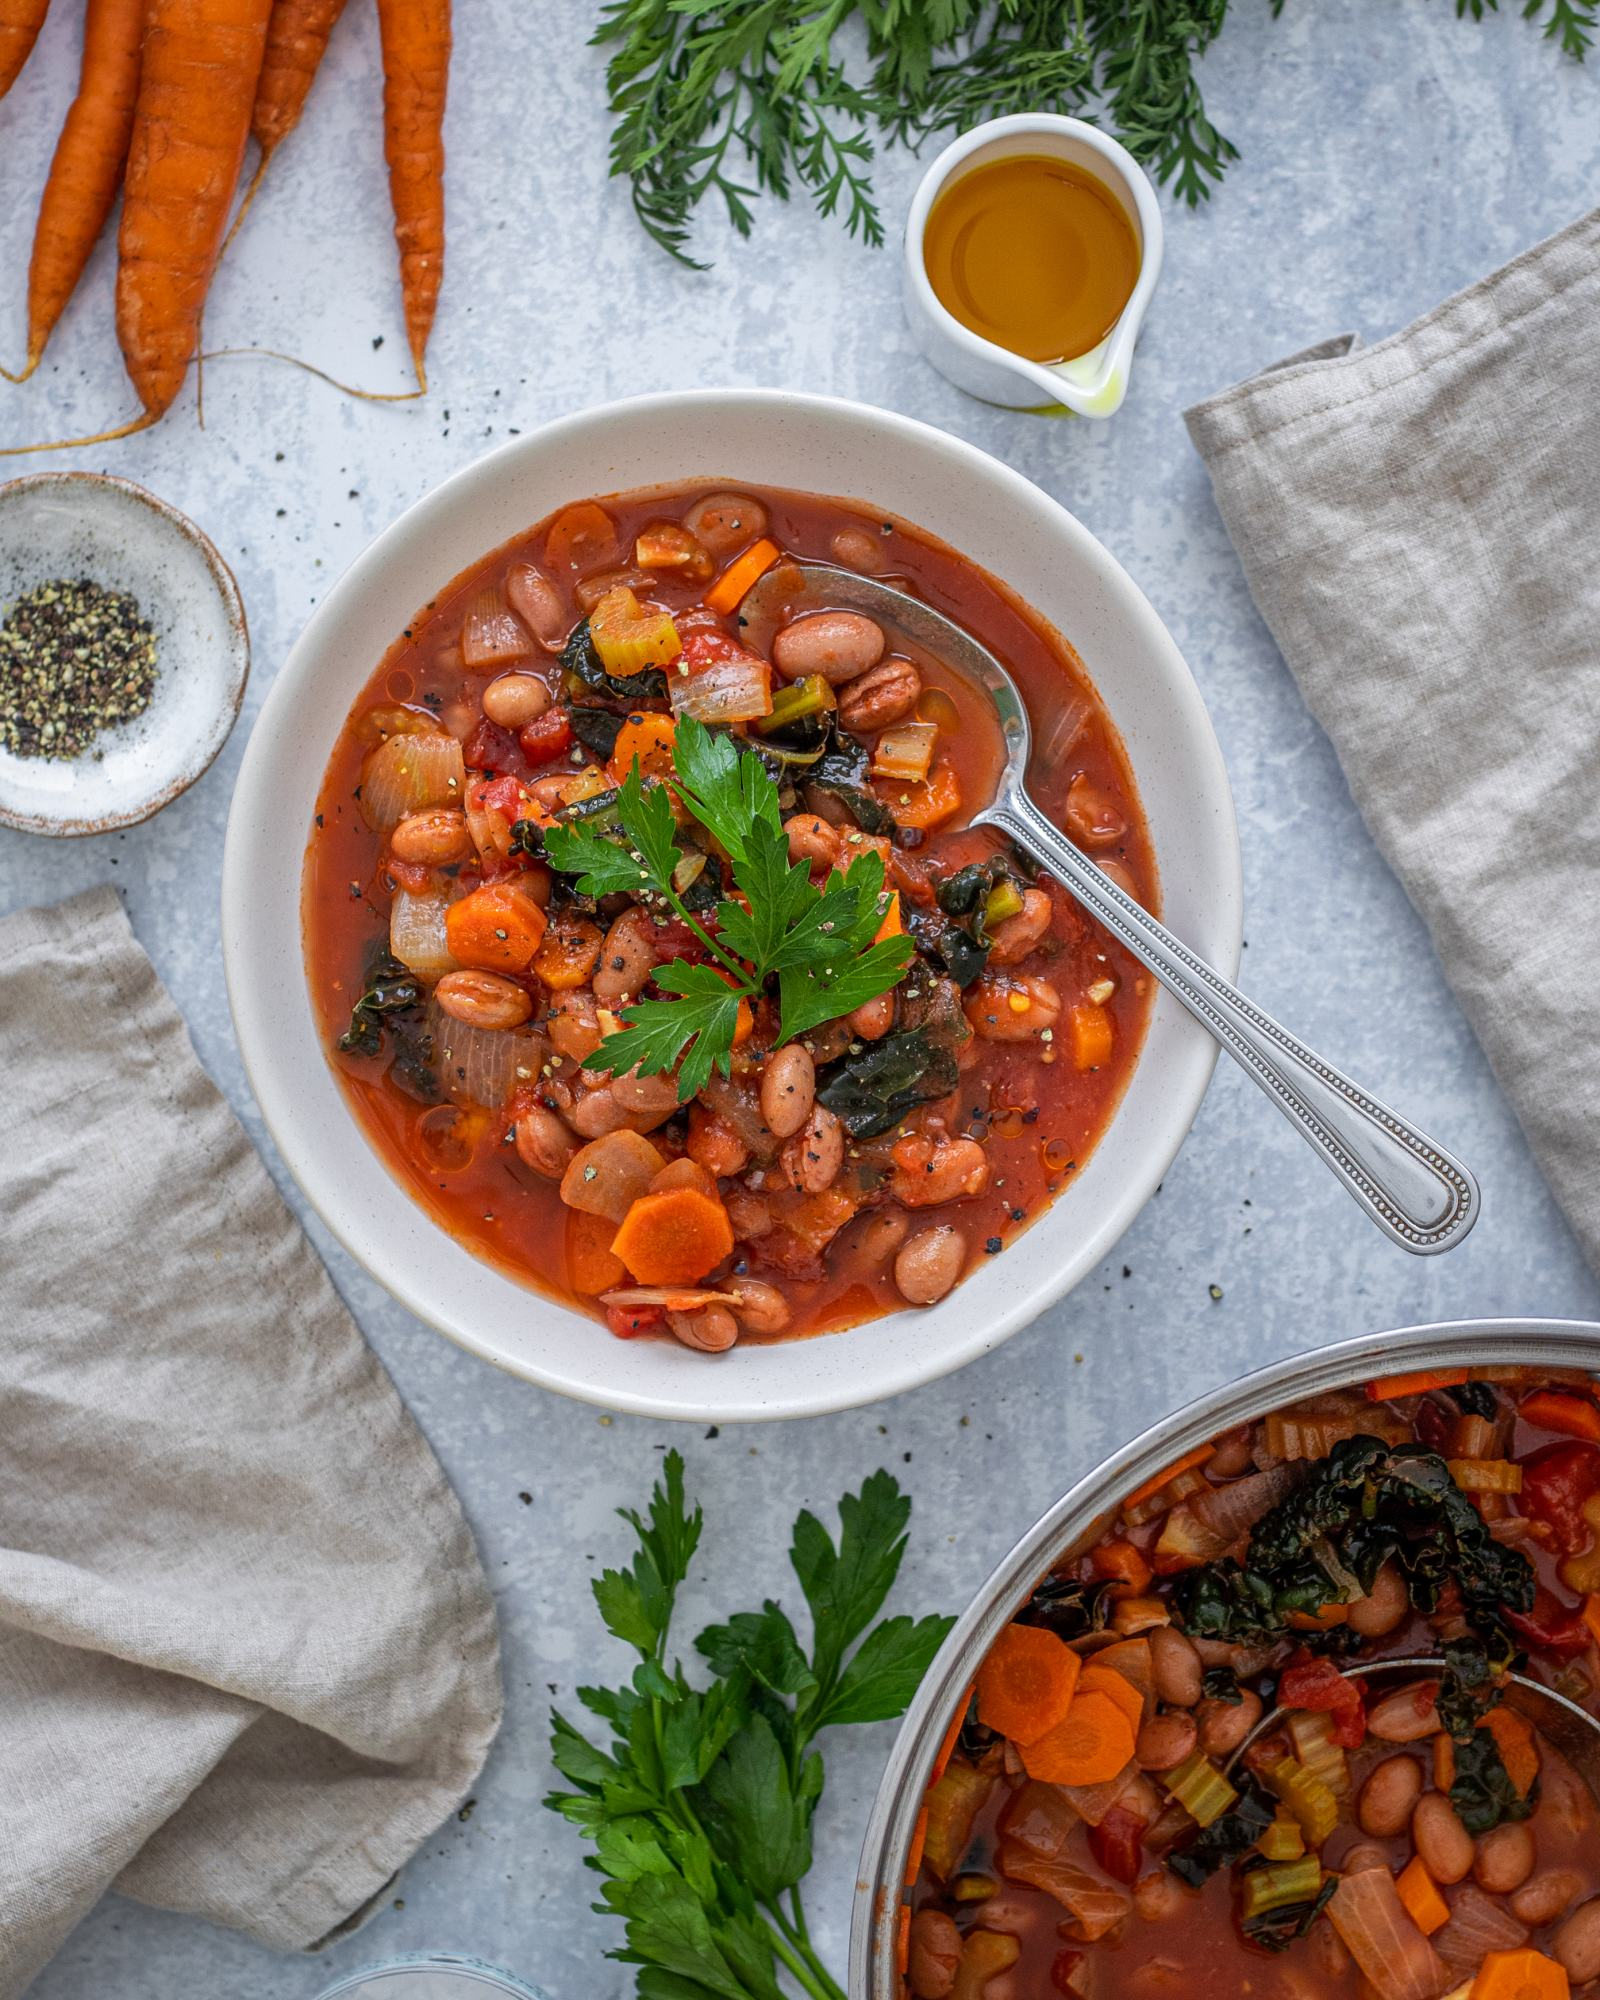 Kale and Borlotti Bean Soup Recipe